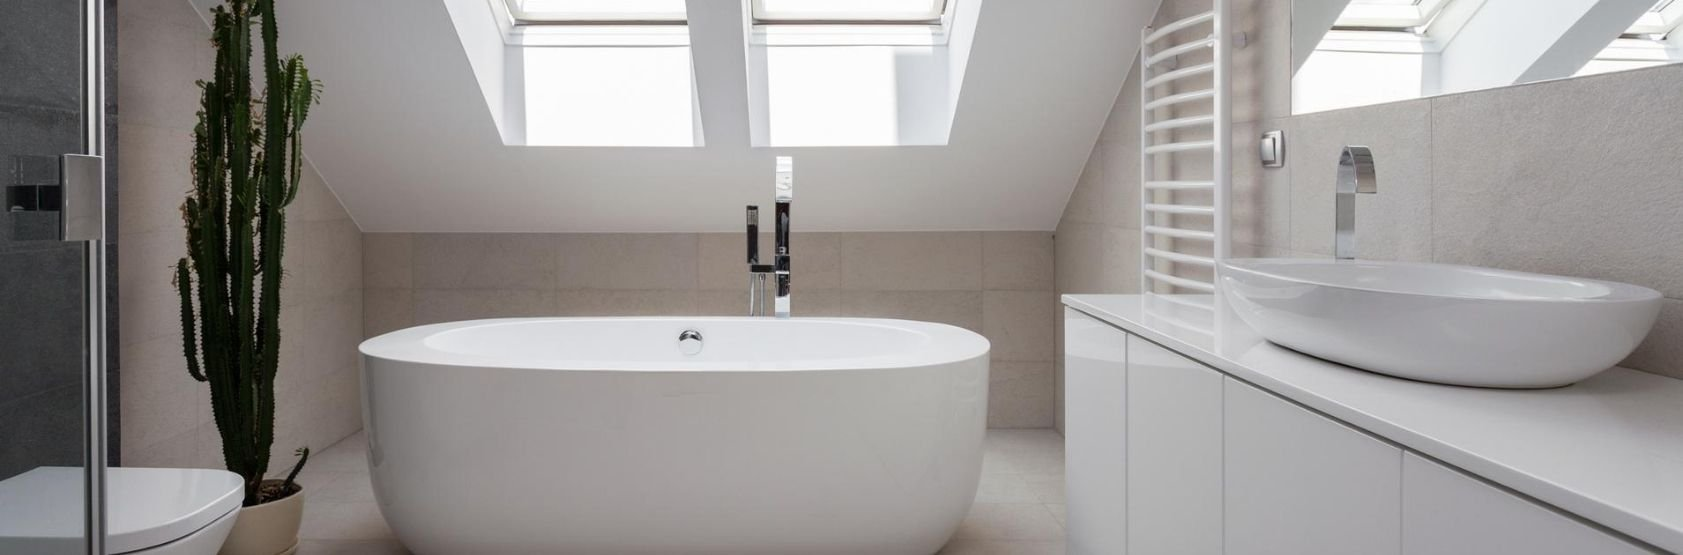 Bathroom-Fitting-Services-Dorset-Hampshire_10